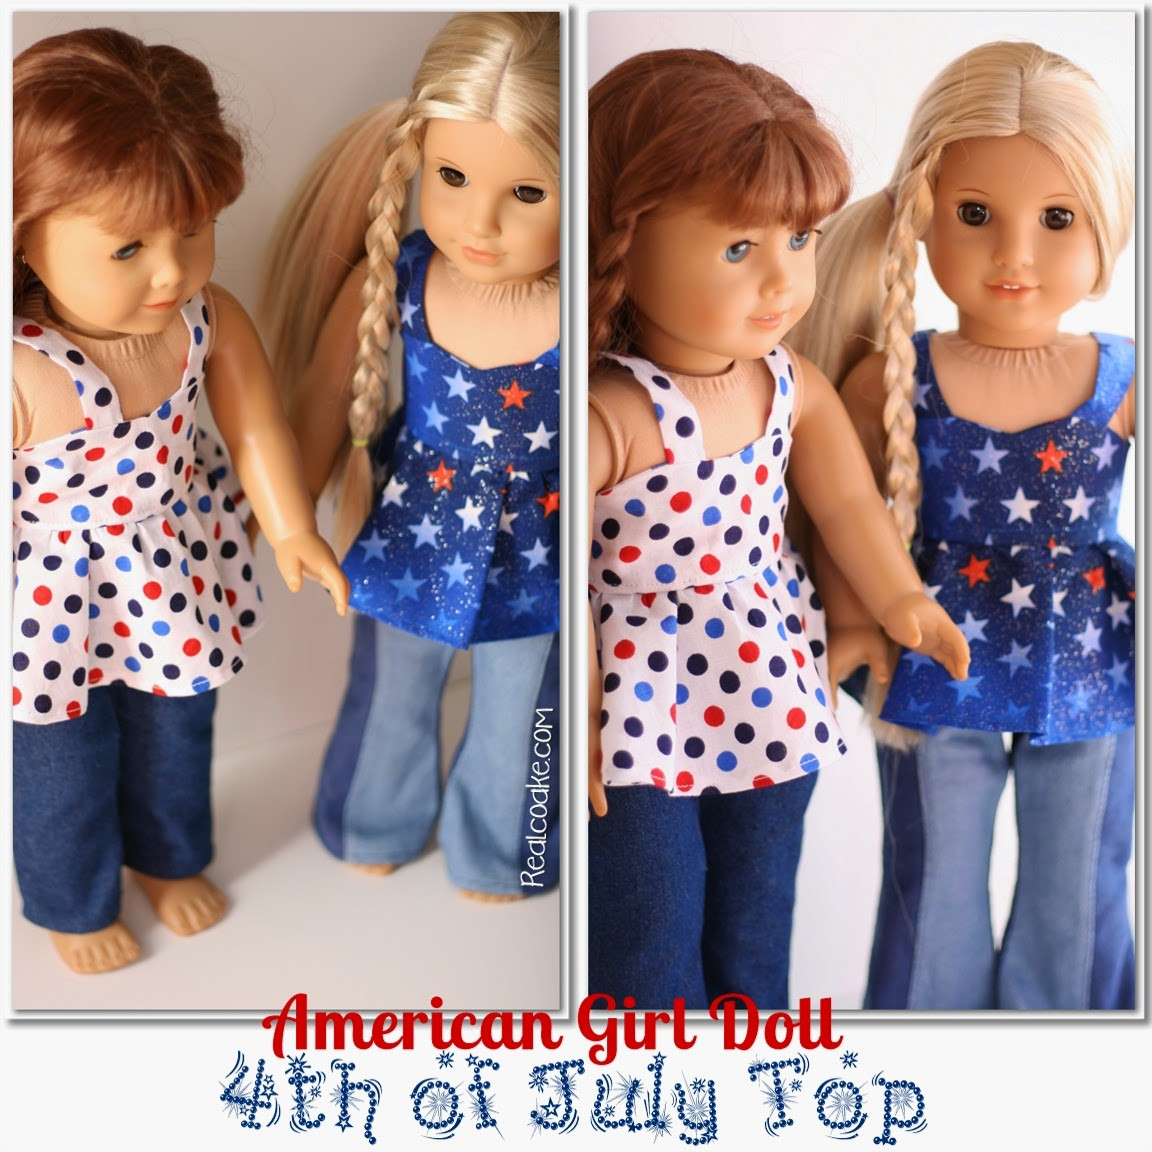 Beautiful American Girl Doll 4th Of July top Free Doll Clothes Pattern American Girl Doll Dress Patterns Of Incredible 48 Models American Girl Doll Dress Patterns